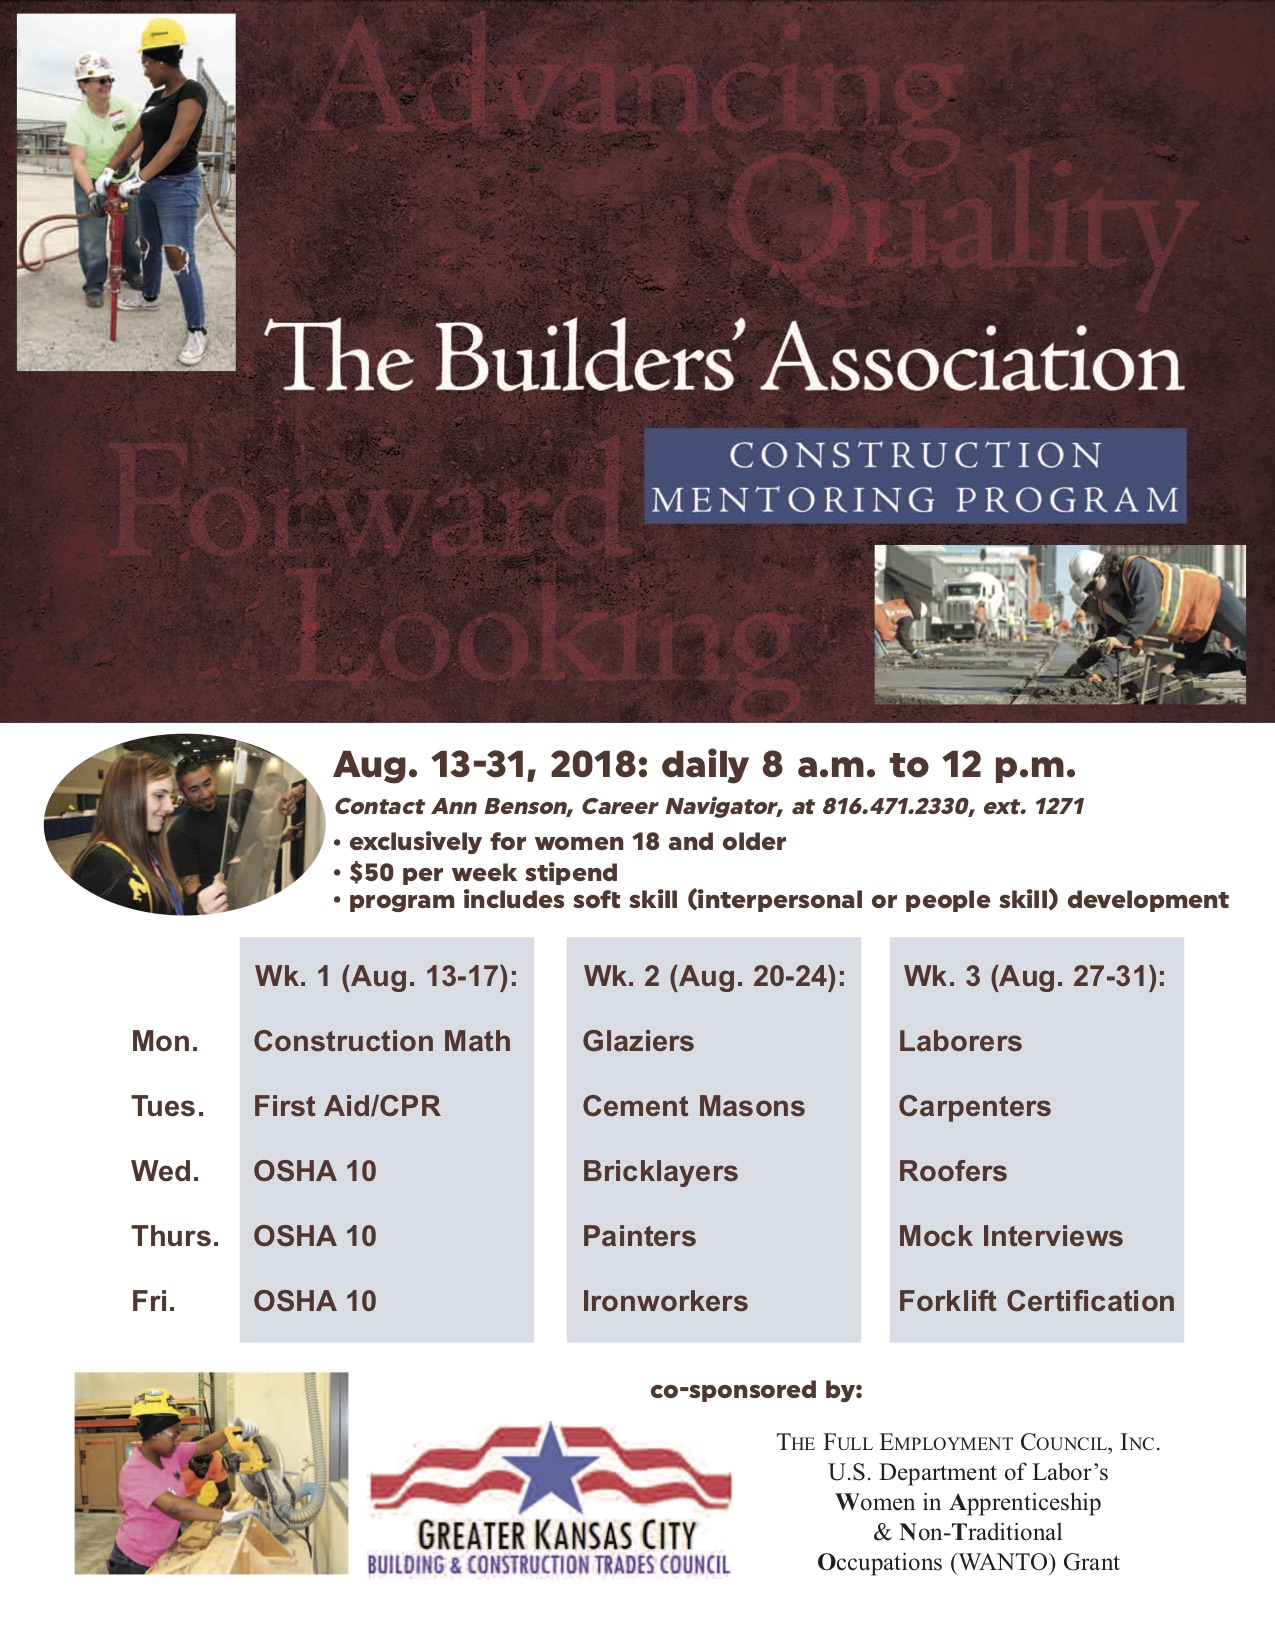 The Greater Kansas City Building Construction Trades Council